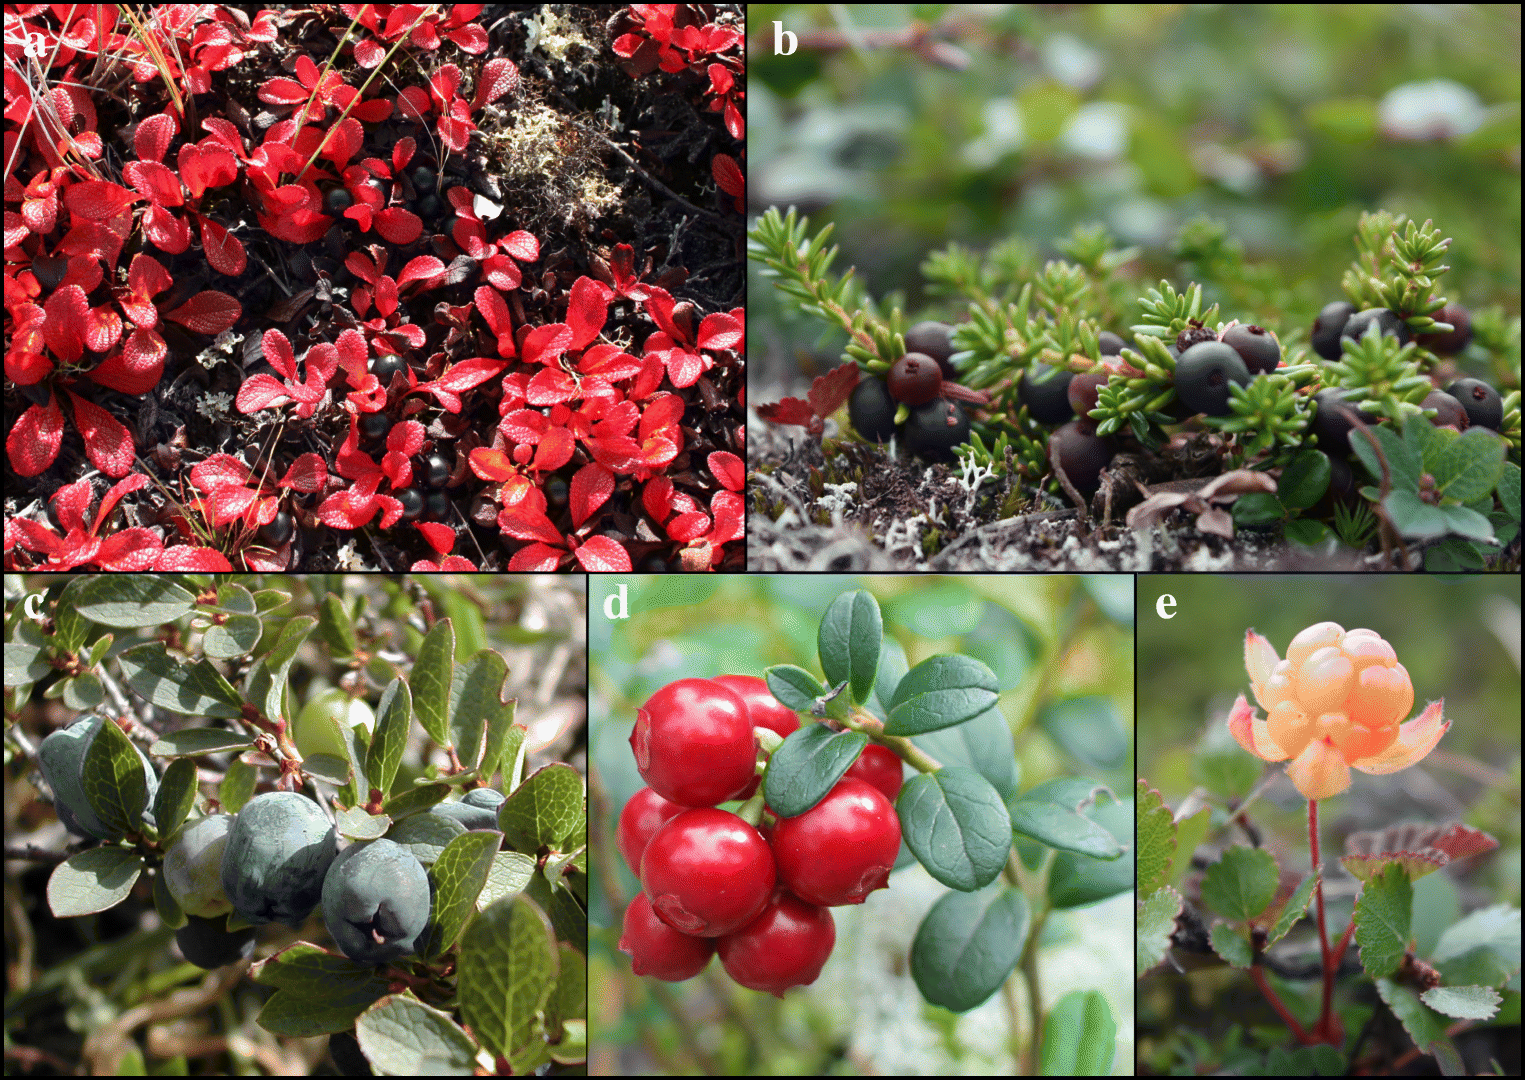 Berry Plants and Berry Picking in Inuit Nunangat: Traditions